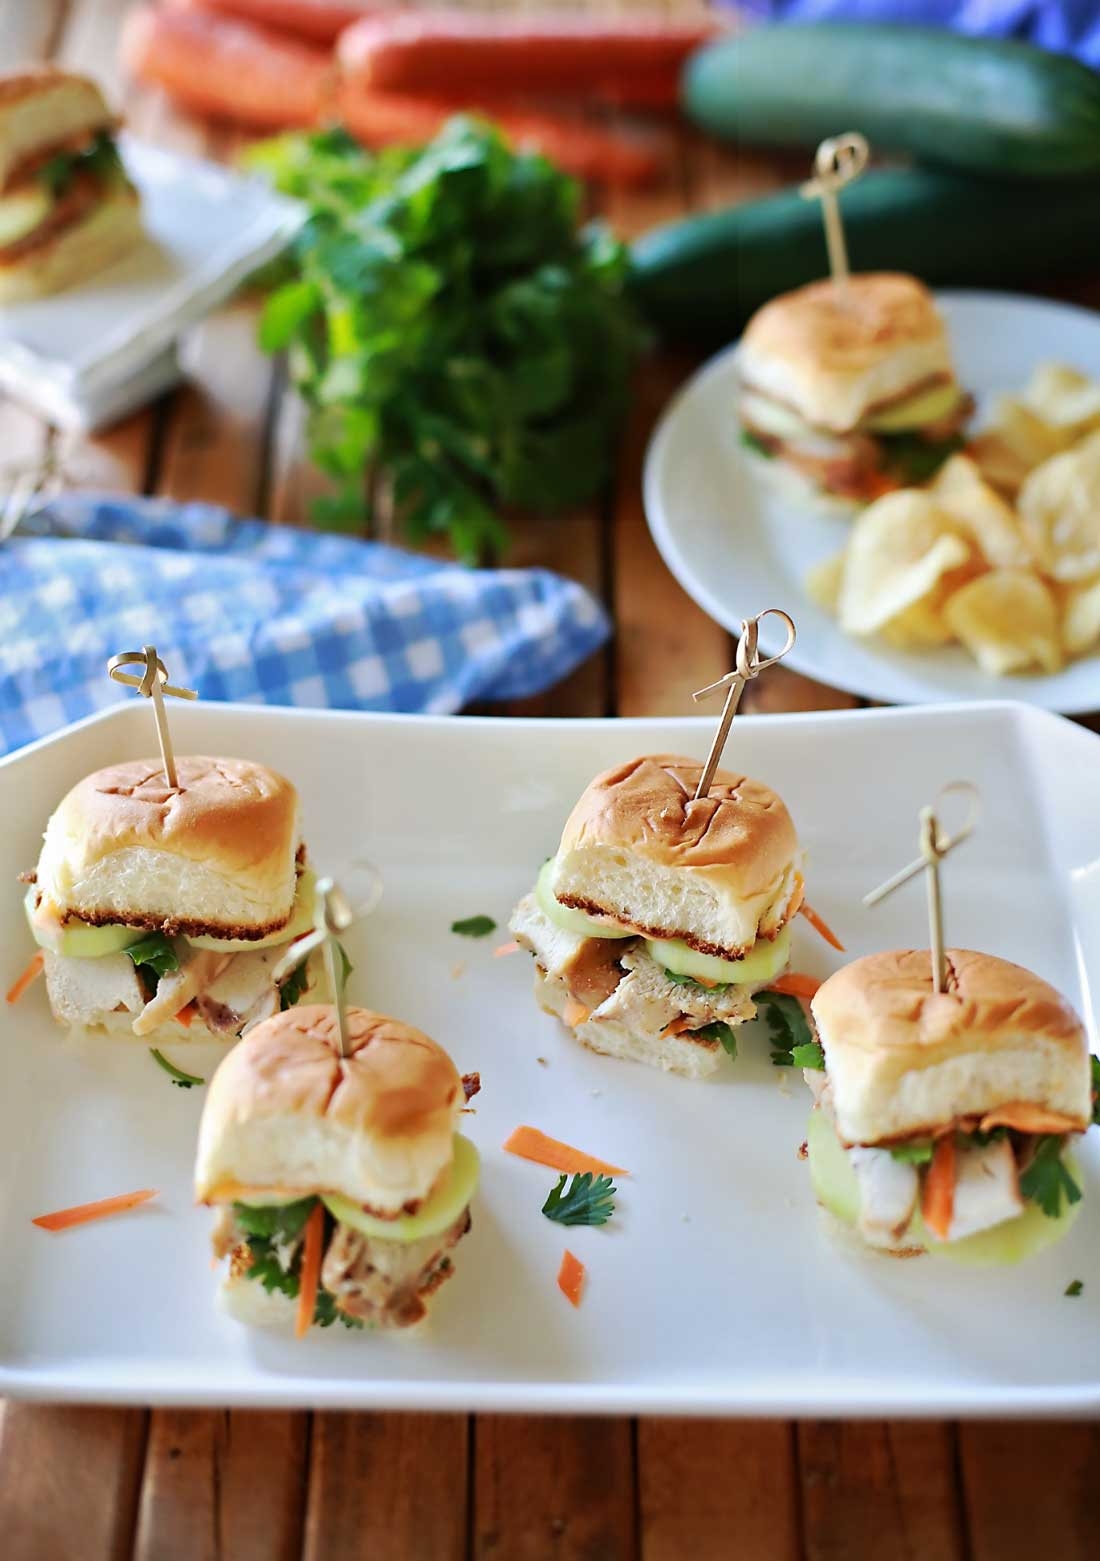 Super incredibly great sliders! We couldn't serve these fast enough, everybody loved them! Banh mi for the win!